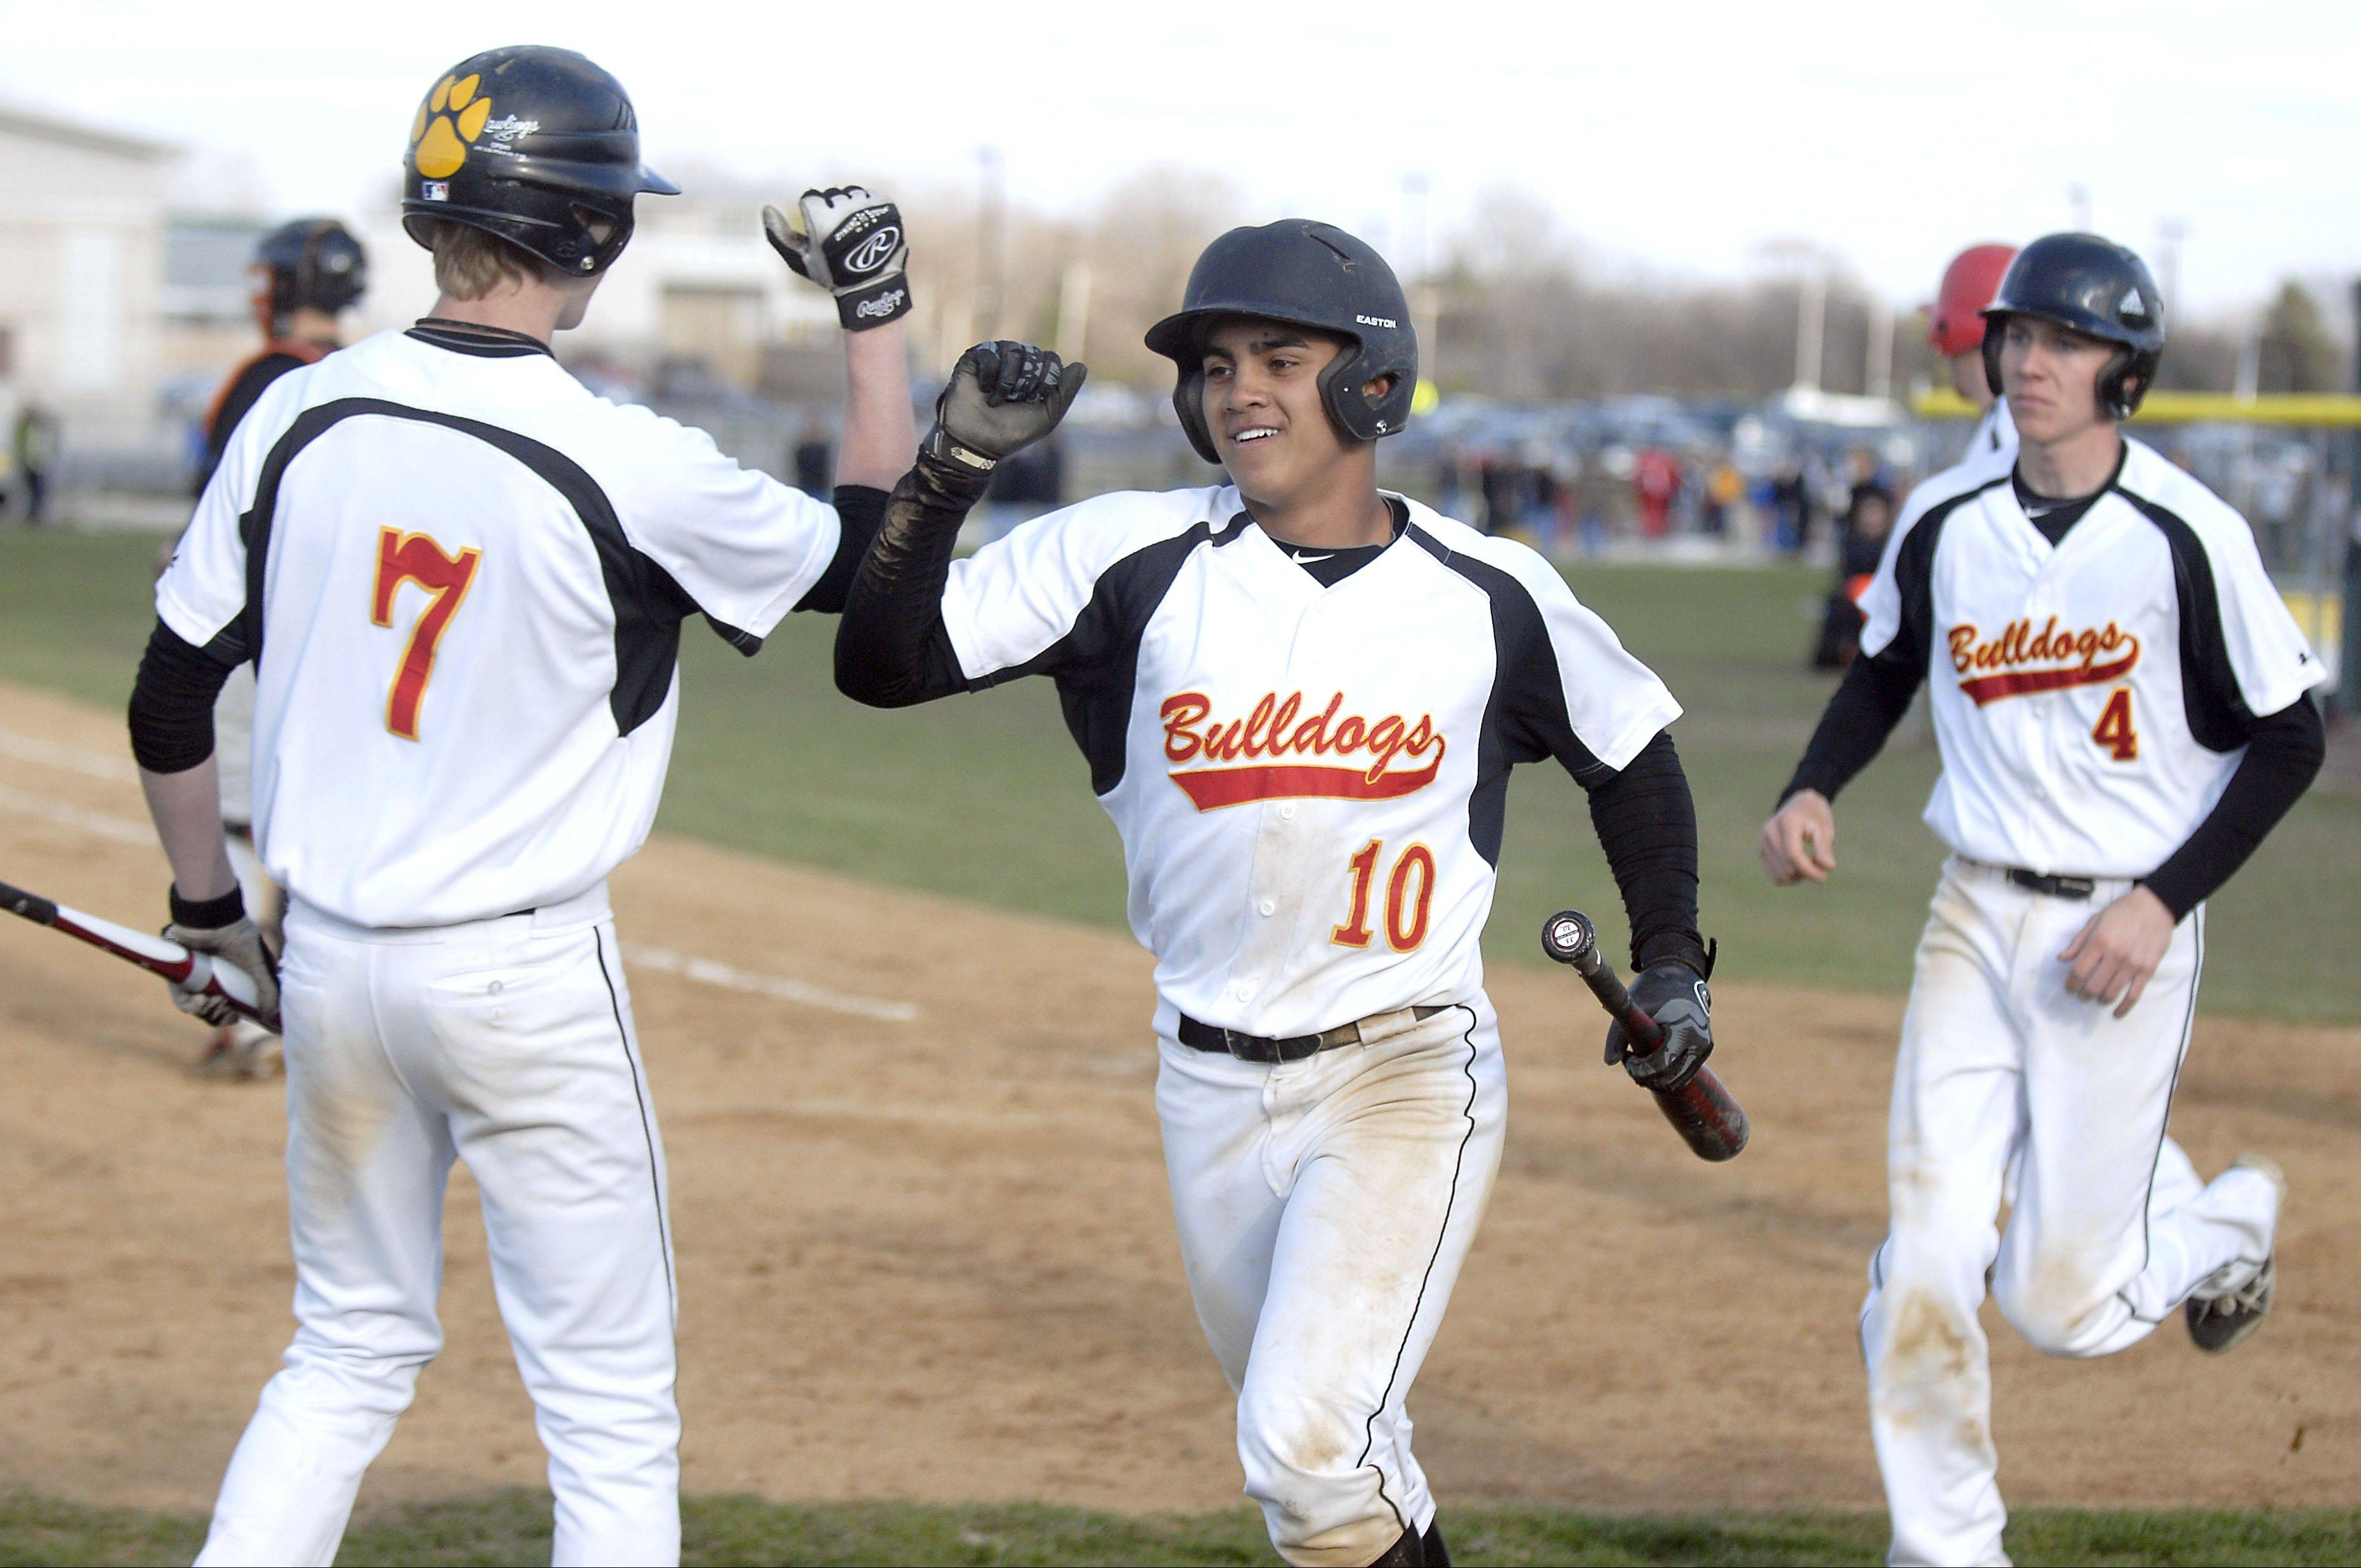 Batavia's Laren Eustace (10) and Billy Zwick (4) receive congrats from teammate Andrew Seigler after both scored in the fifth inning on Wednesday in Batavia.